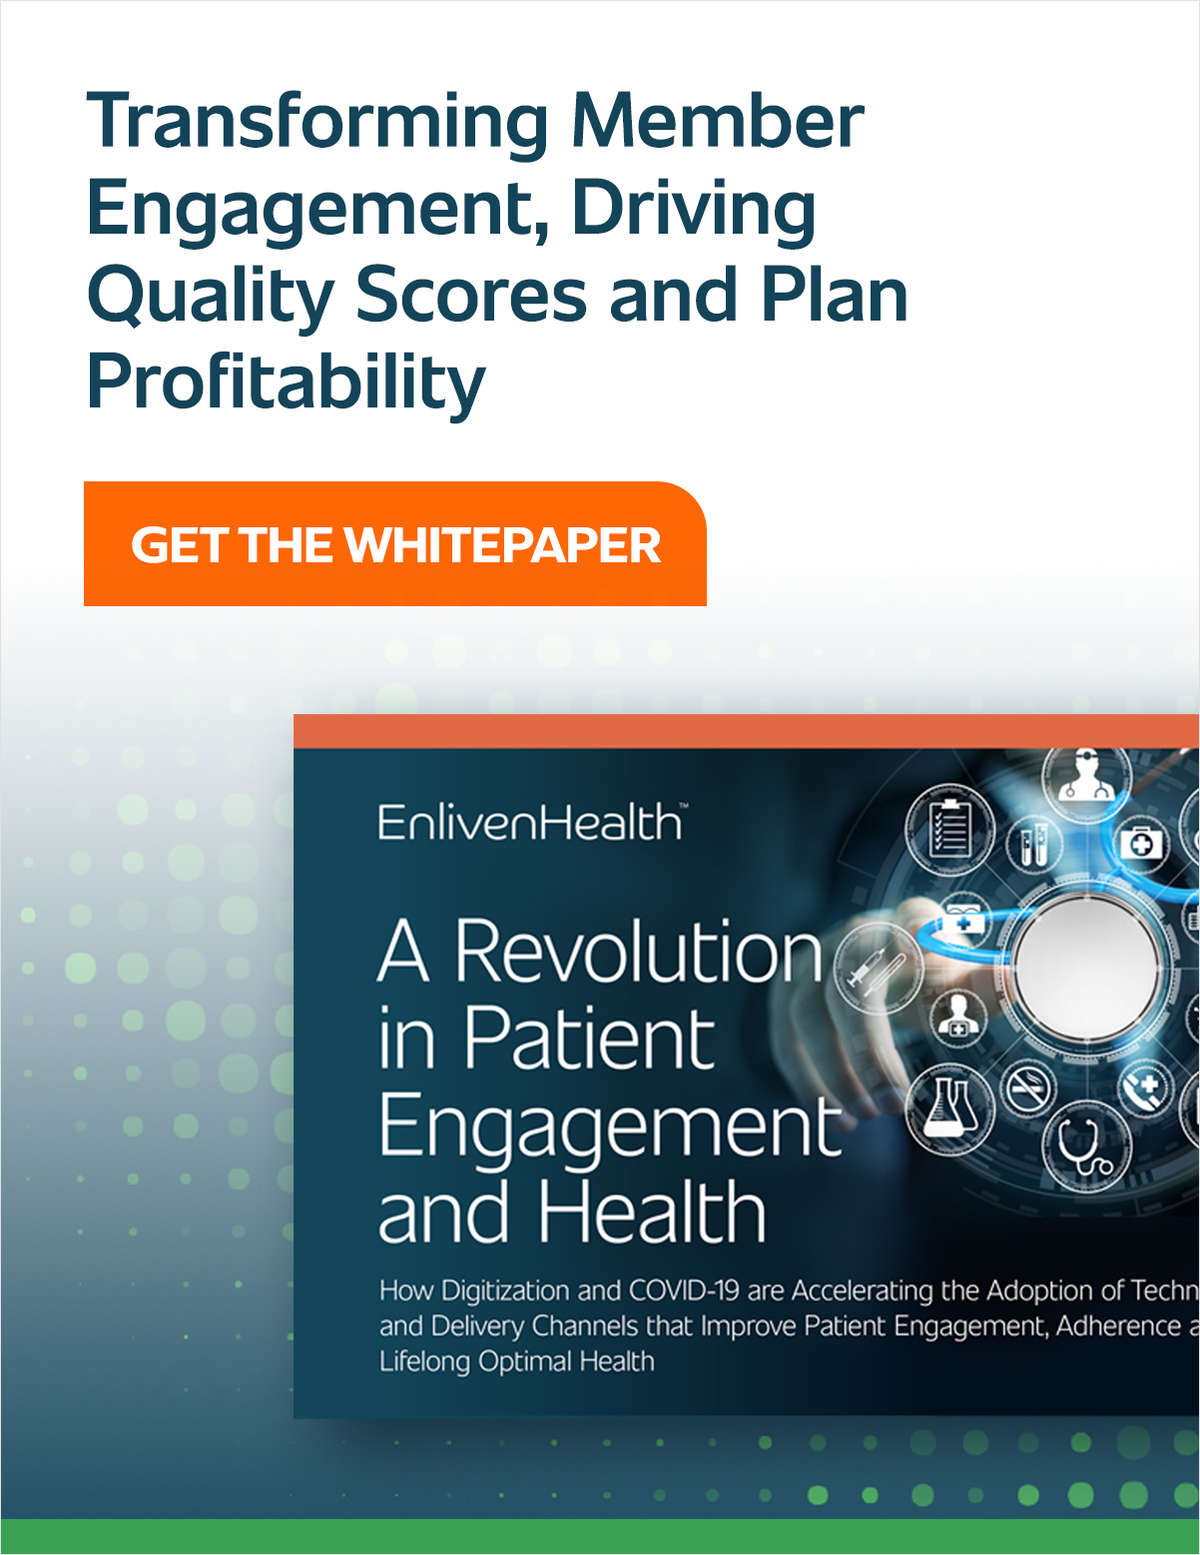 A Revolution in Patient Engagement and Health